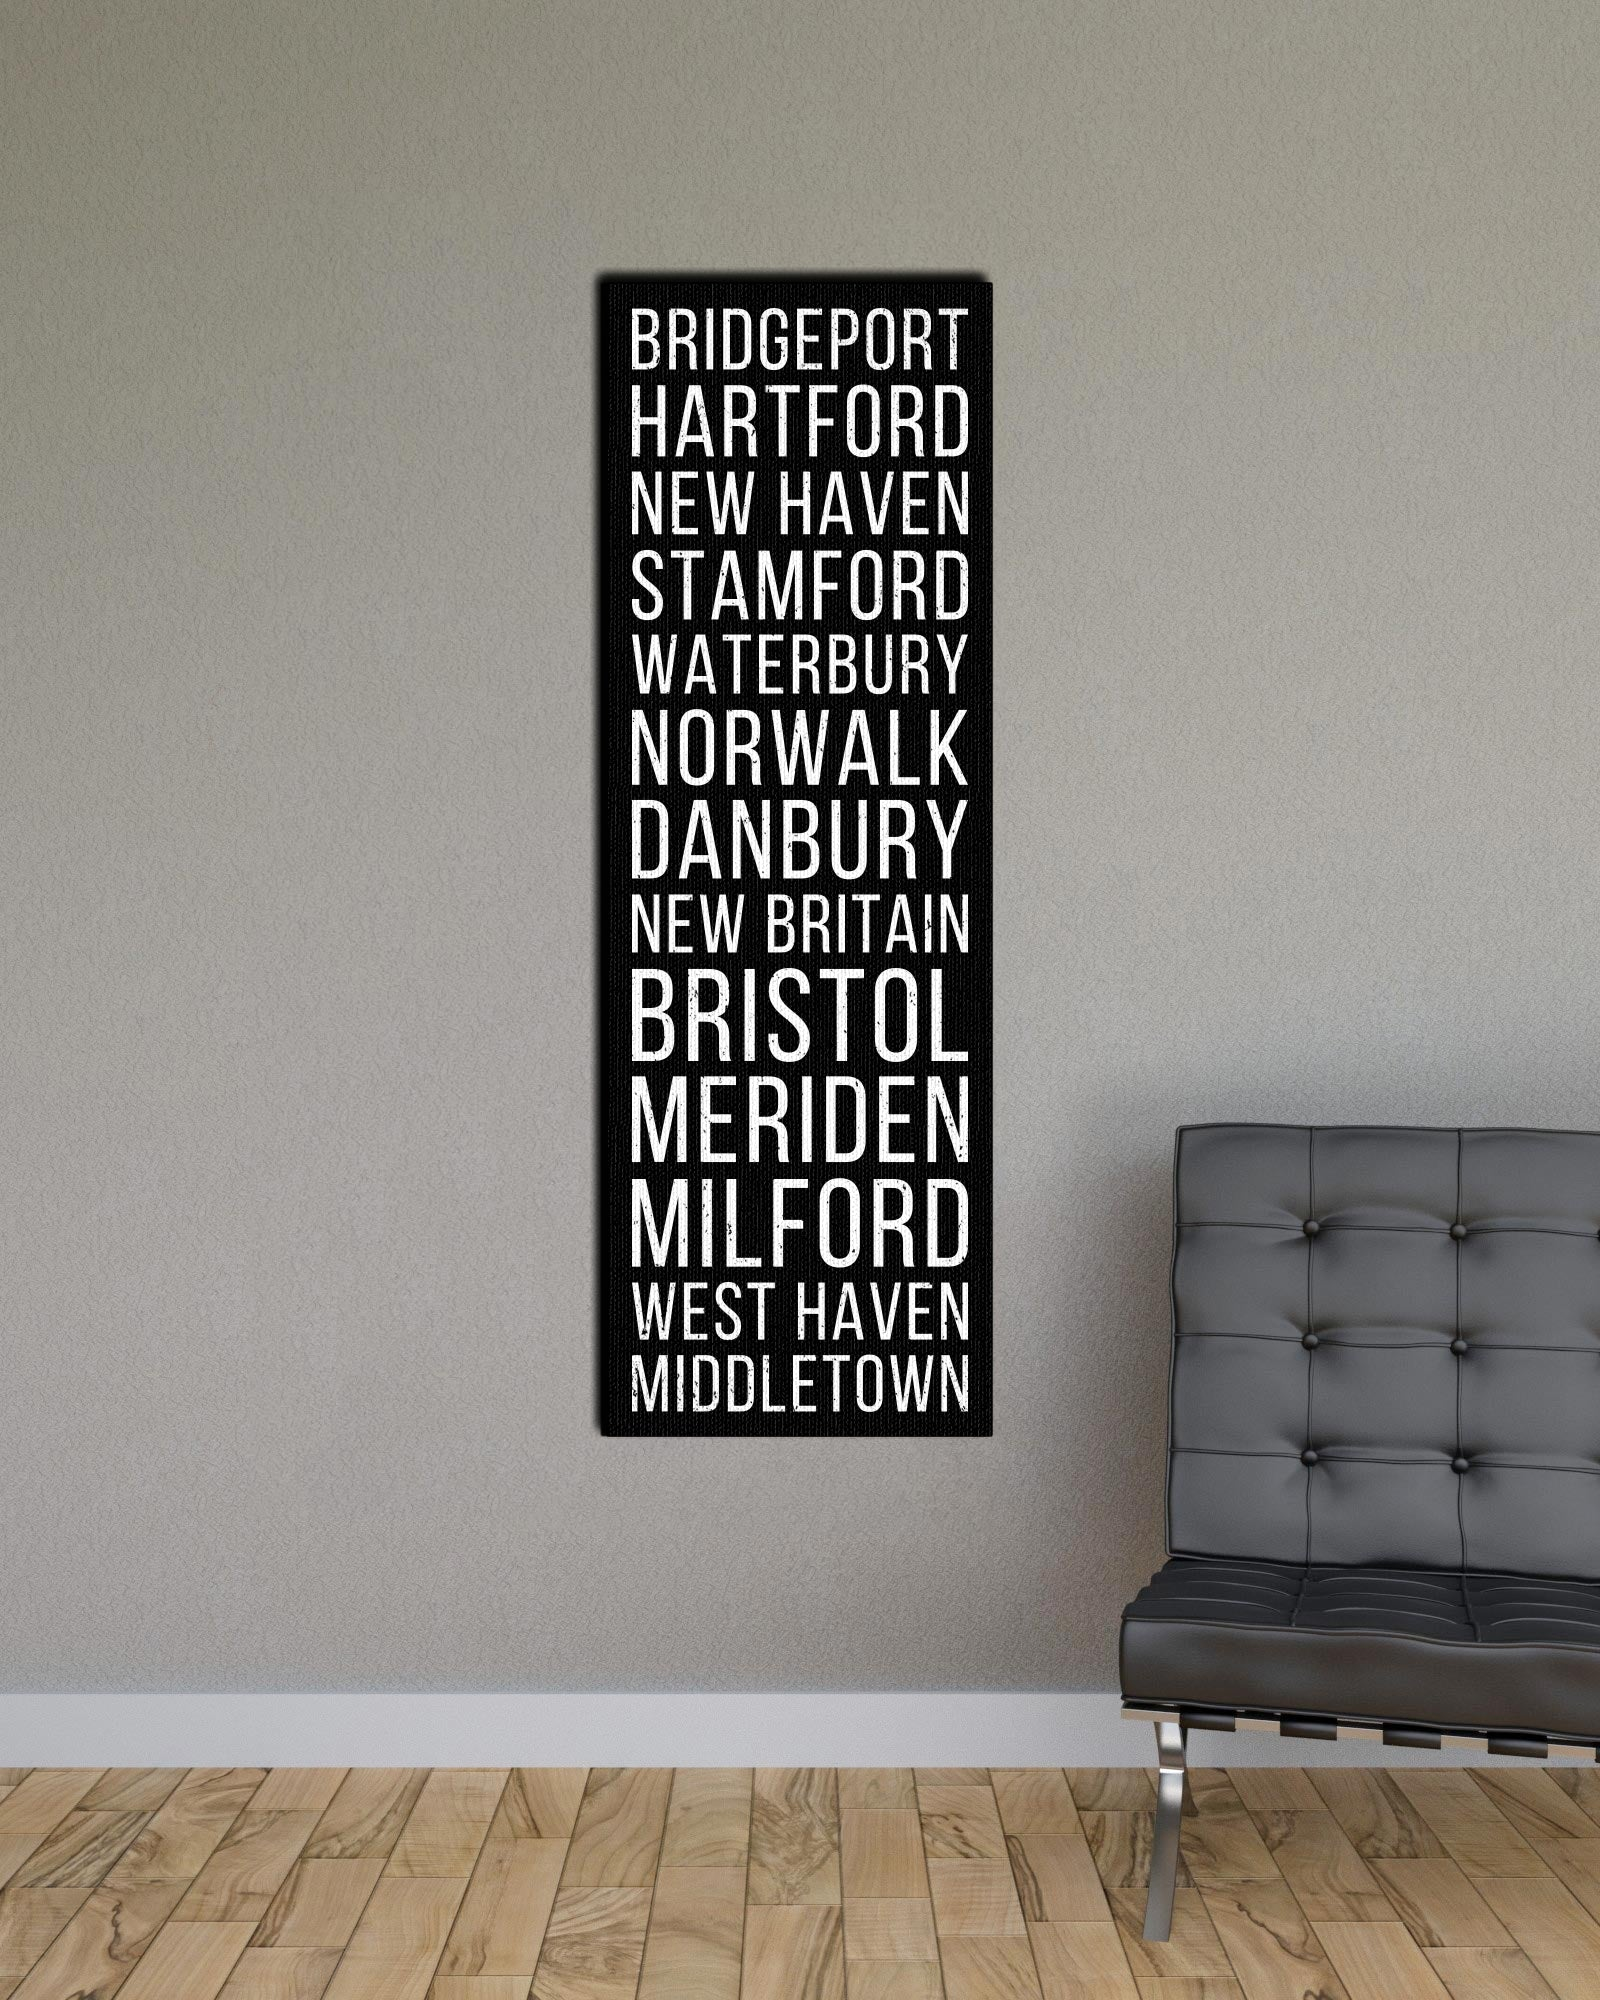 Connecticut Bridgeport Hartford New Haven Bus Scroll Subway Print